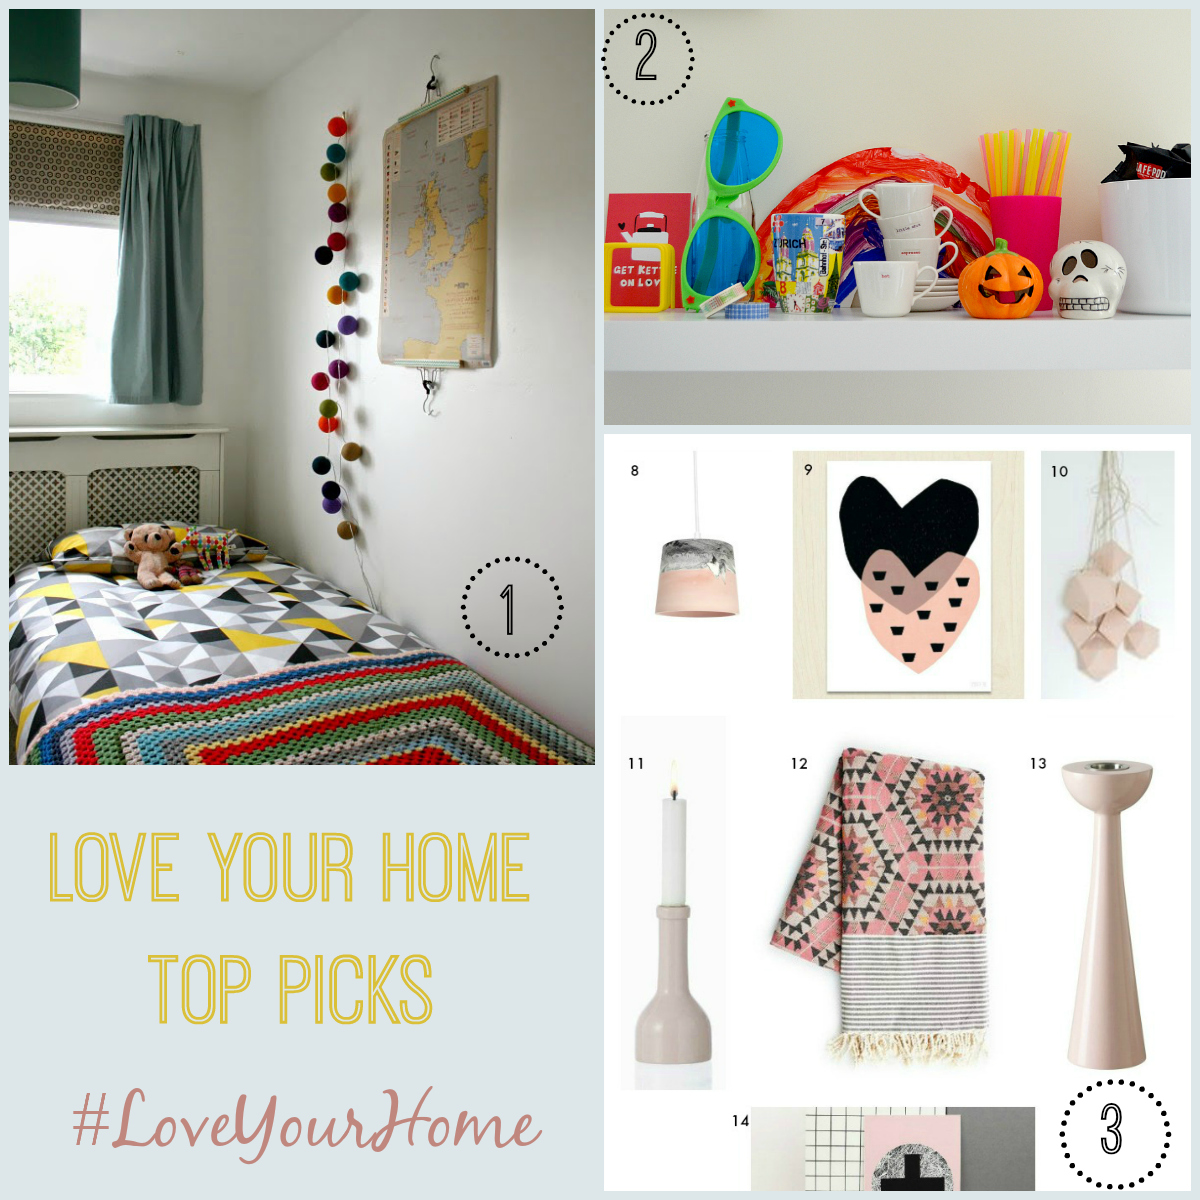 Loveyourhome Top Picks 23-10